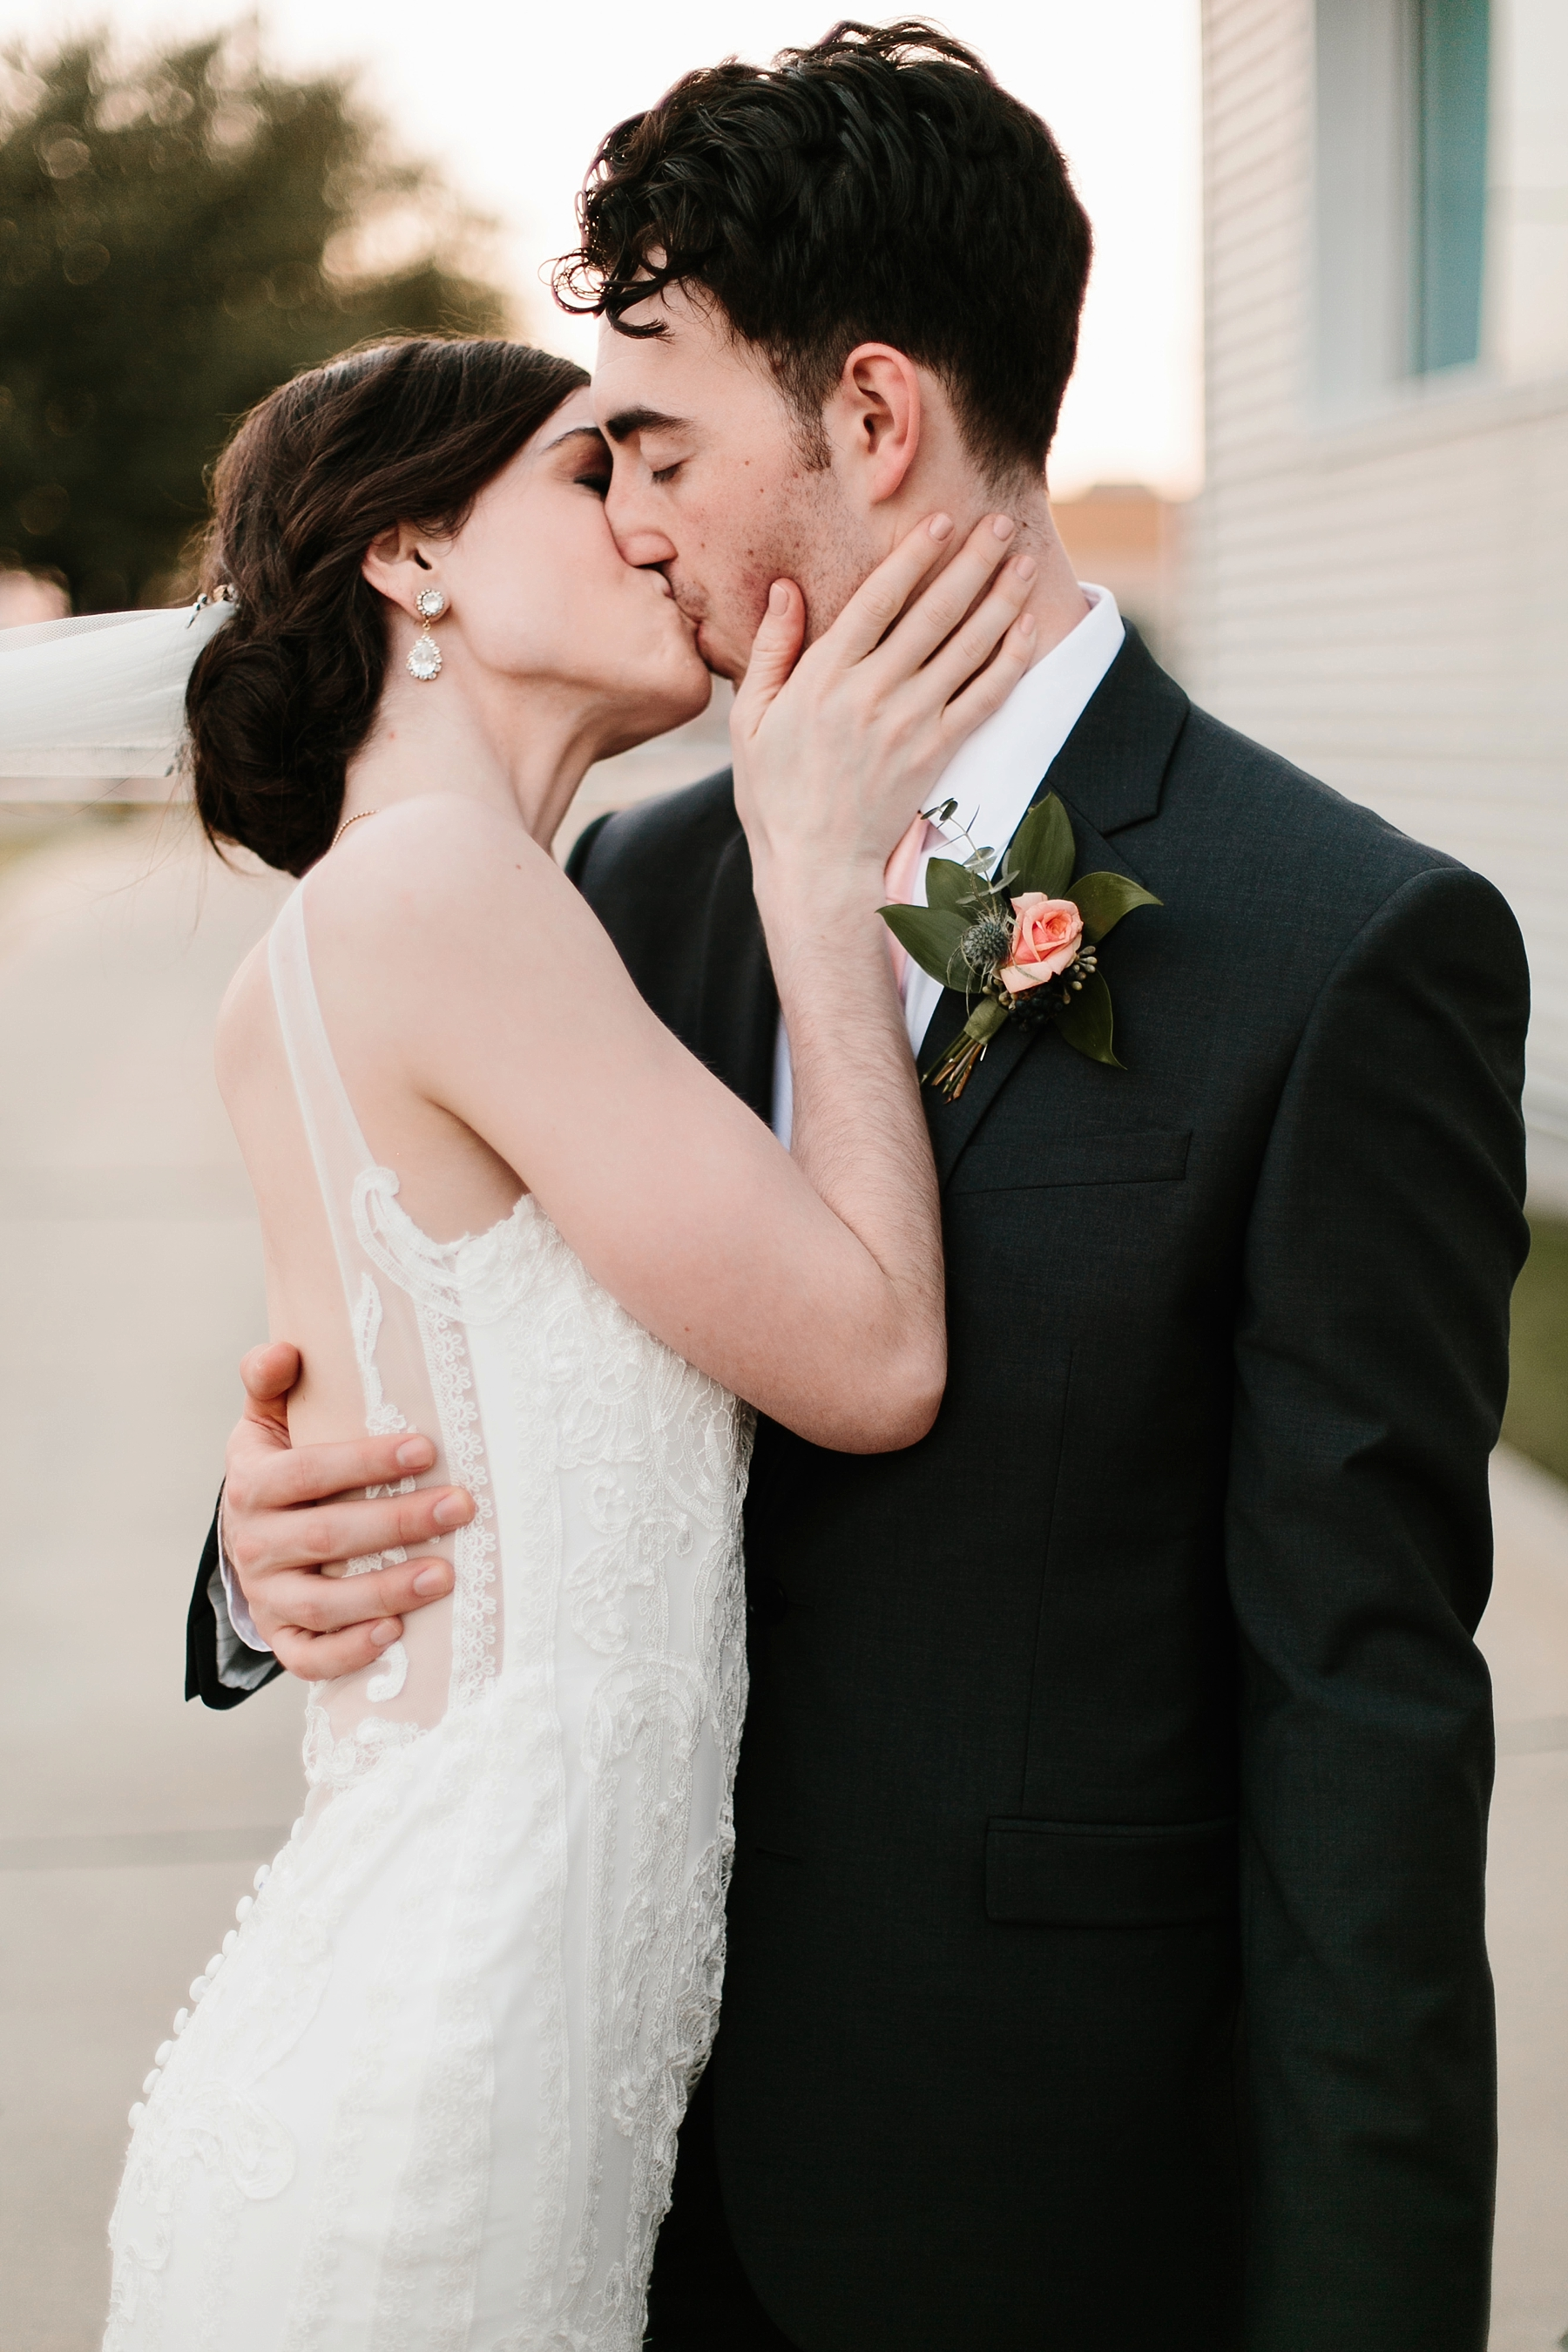 Emily + Caleb _ an elegant, intentional, industrial style wedding with navy + gold accents at 6500 in Dallas, TX by North Texas Wedding Photographer Rachel Meagan Photography _ 123